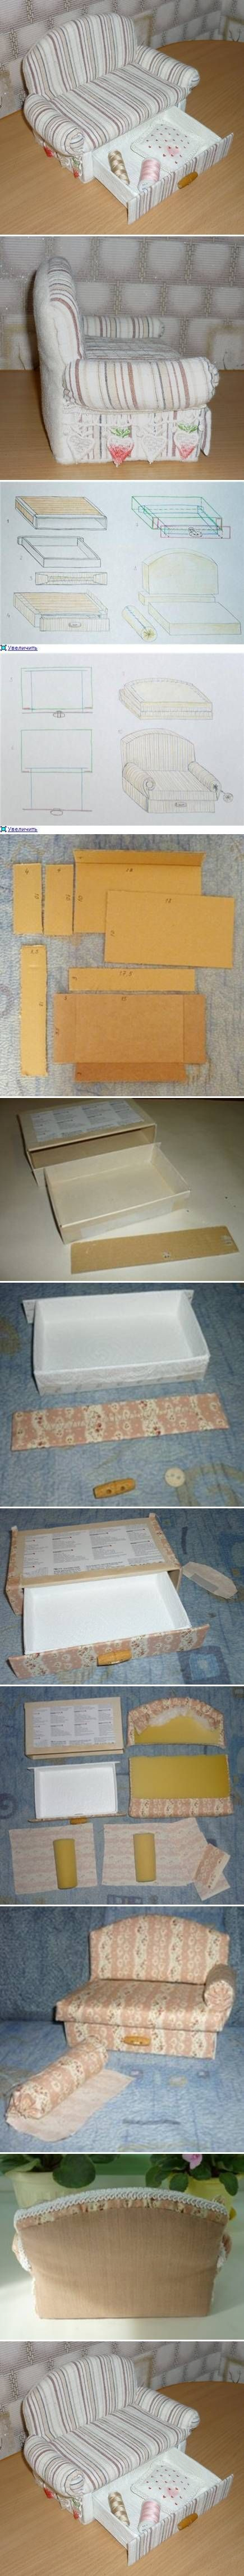 DIY Cardboard Sofa with Drawer. I LOVE the drawer! This could also be made into a daybed with trundle.